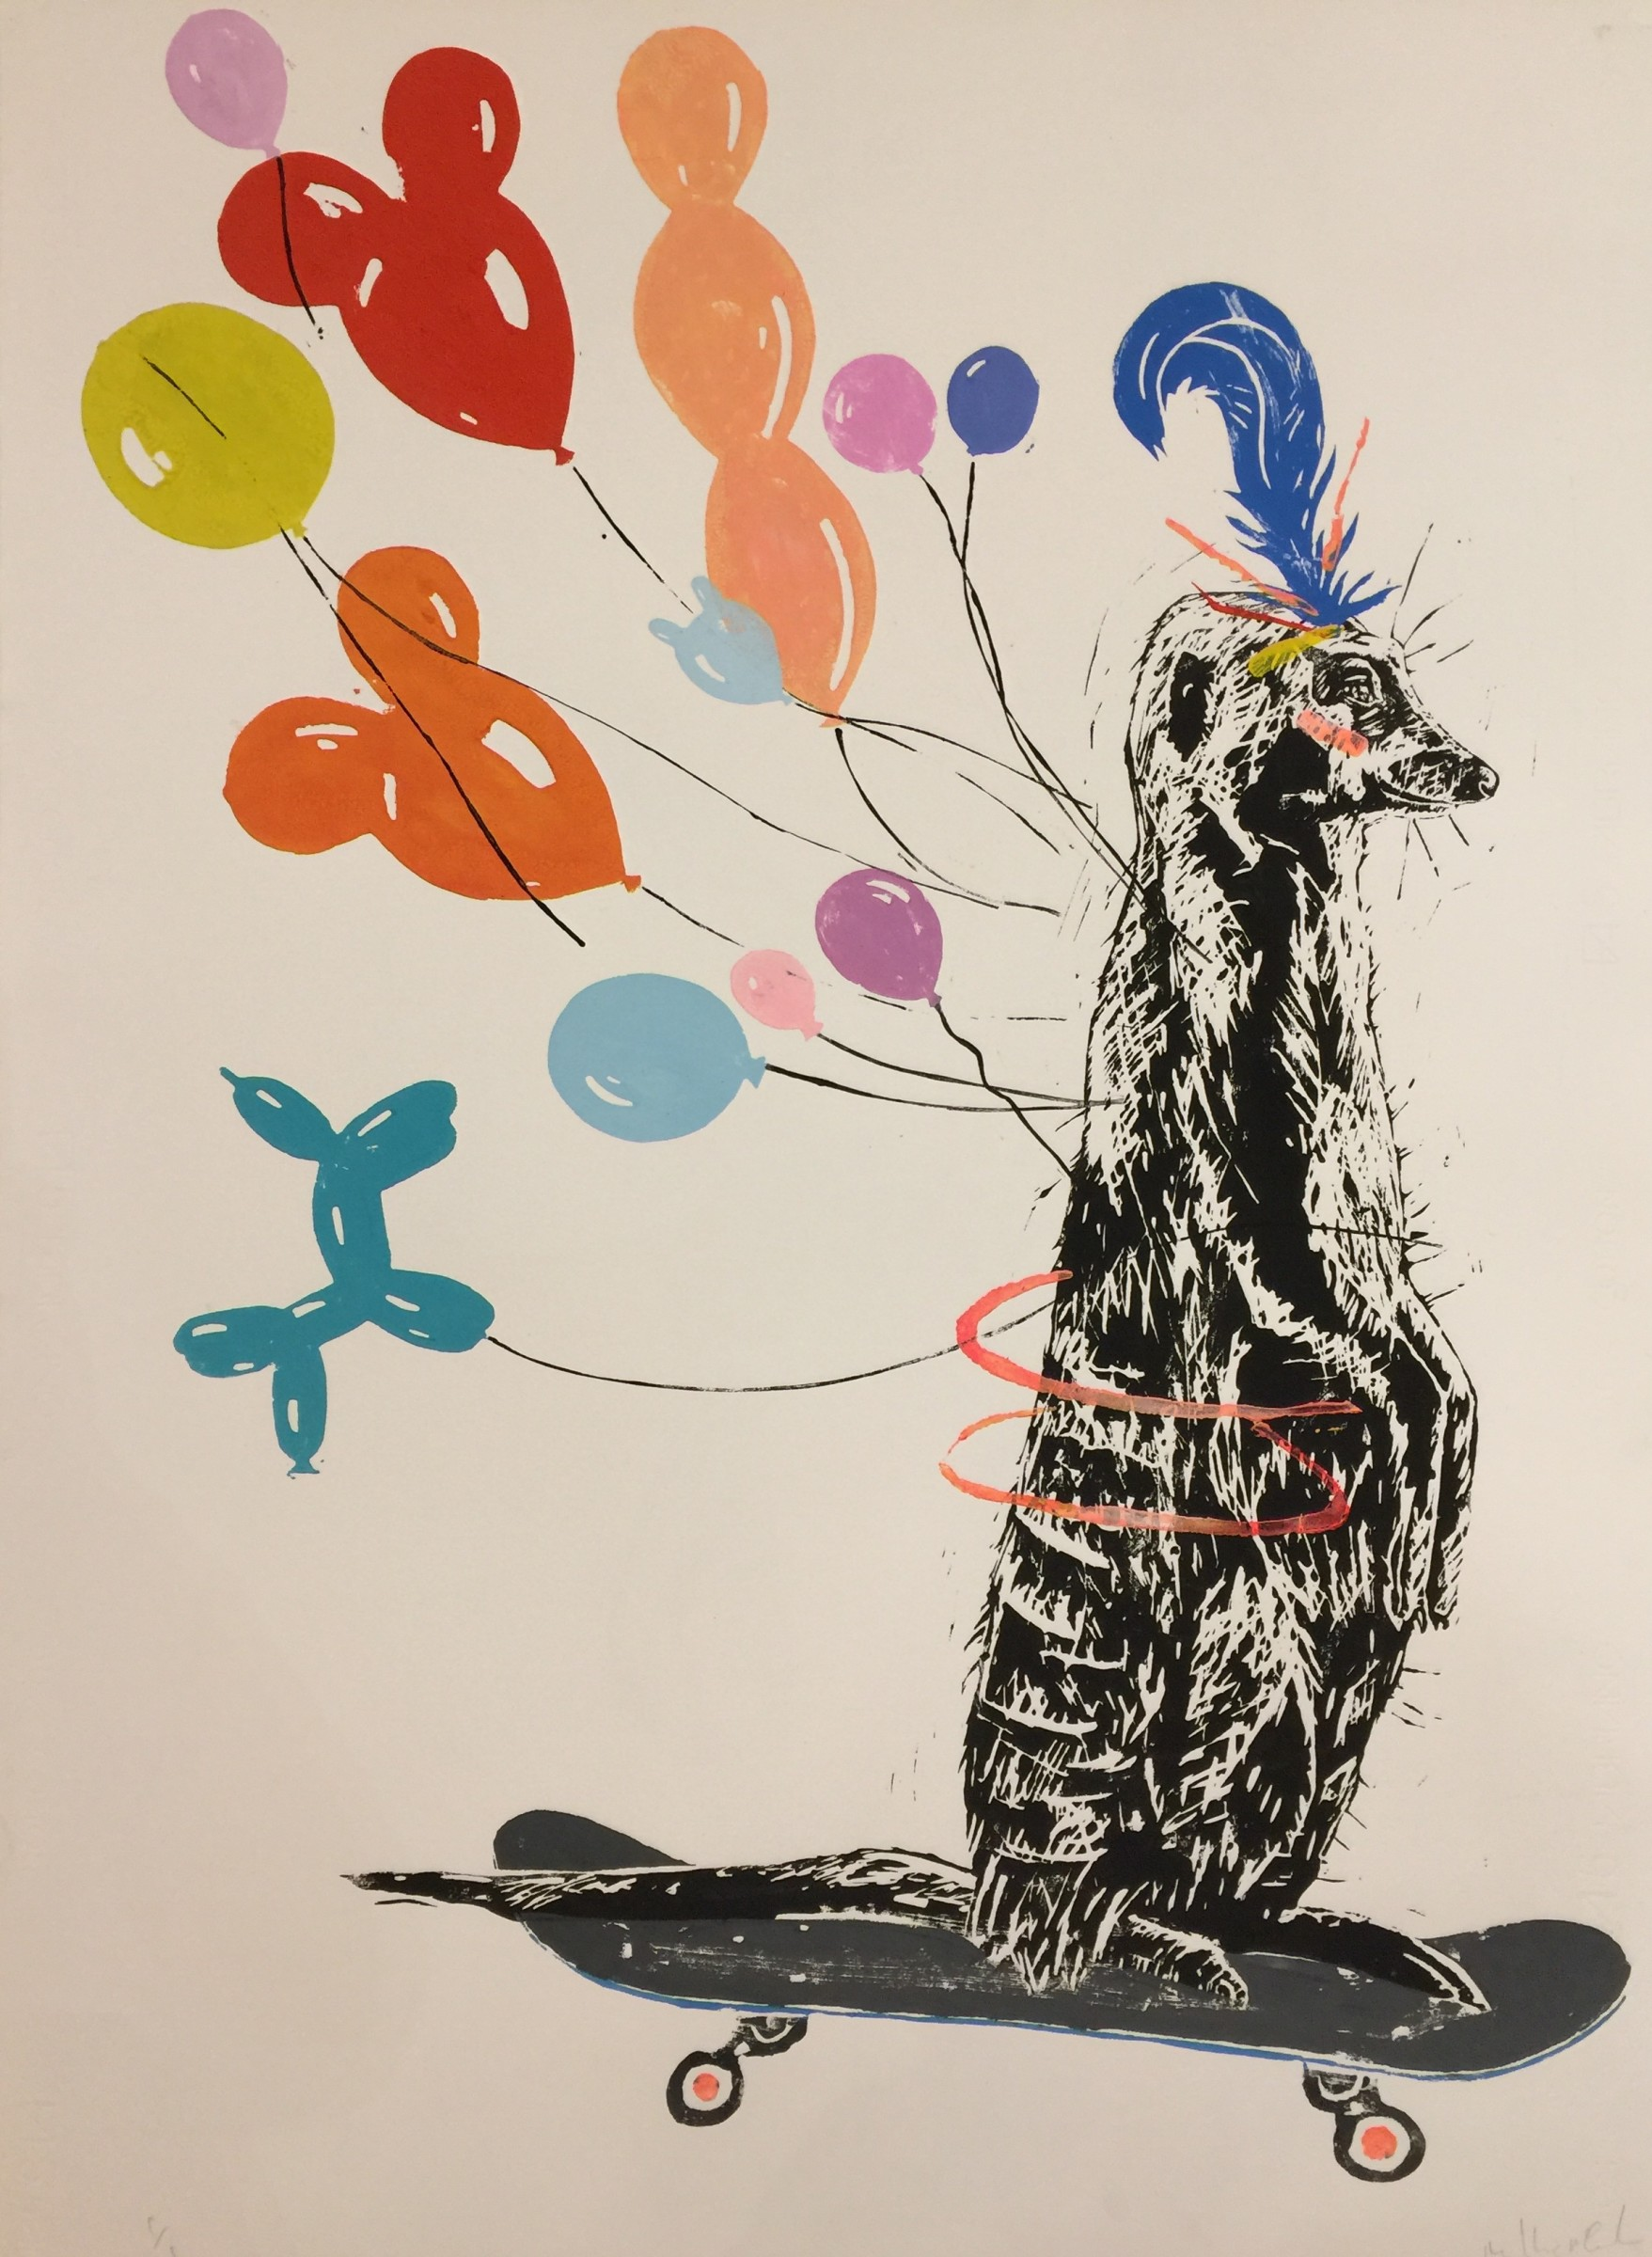 <span class=&#34;link fancybox-details-link&#34;><a href=&#34;/artists/39-millie-mccallum/works/1896-millie-mccallum-meerkat-with-feather-on-skateboard-2017/&#34;>View Detail Page</a></span><div class=&#34;artist&#34;><strong>Millie McCallum</strong></div> <div class=&#34;title&#34;><em>Meerkat with Feather on Skateboard</em>, 2017</div> <div class=&#34;medium&#34;>Linocut 1/1 (framed)</div> <div class=&#34;dimensions&#34;>98 x 70 cm (paper size)</div><div class=&#34;copyright_line&#34;>Copyright The Artist</div>